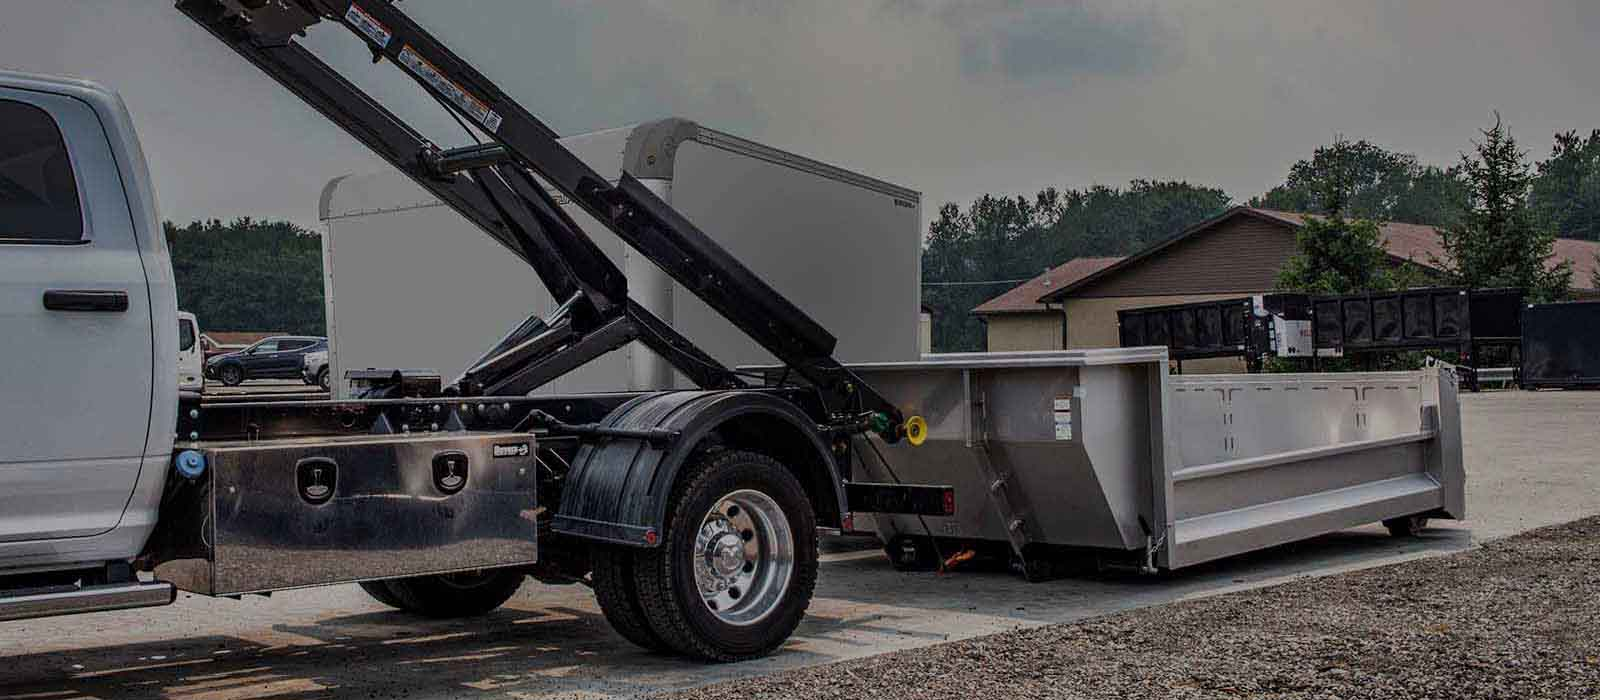 Match your fleet to your business with interchangeable truck bodies to service almost every industry with solutions in Stainless Steel, specialized equipment upfits, and more.